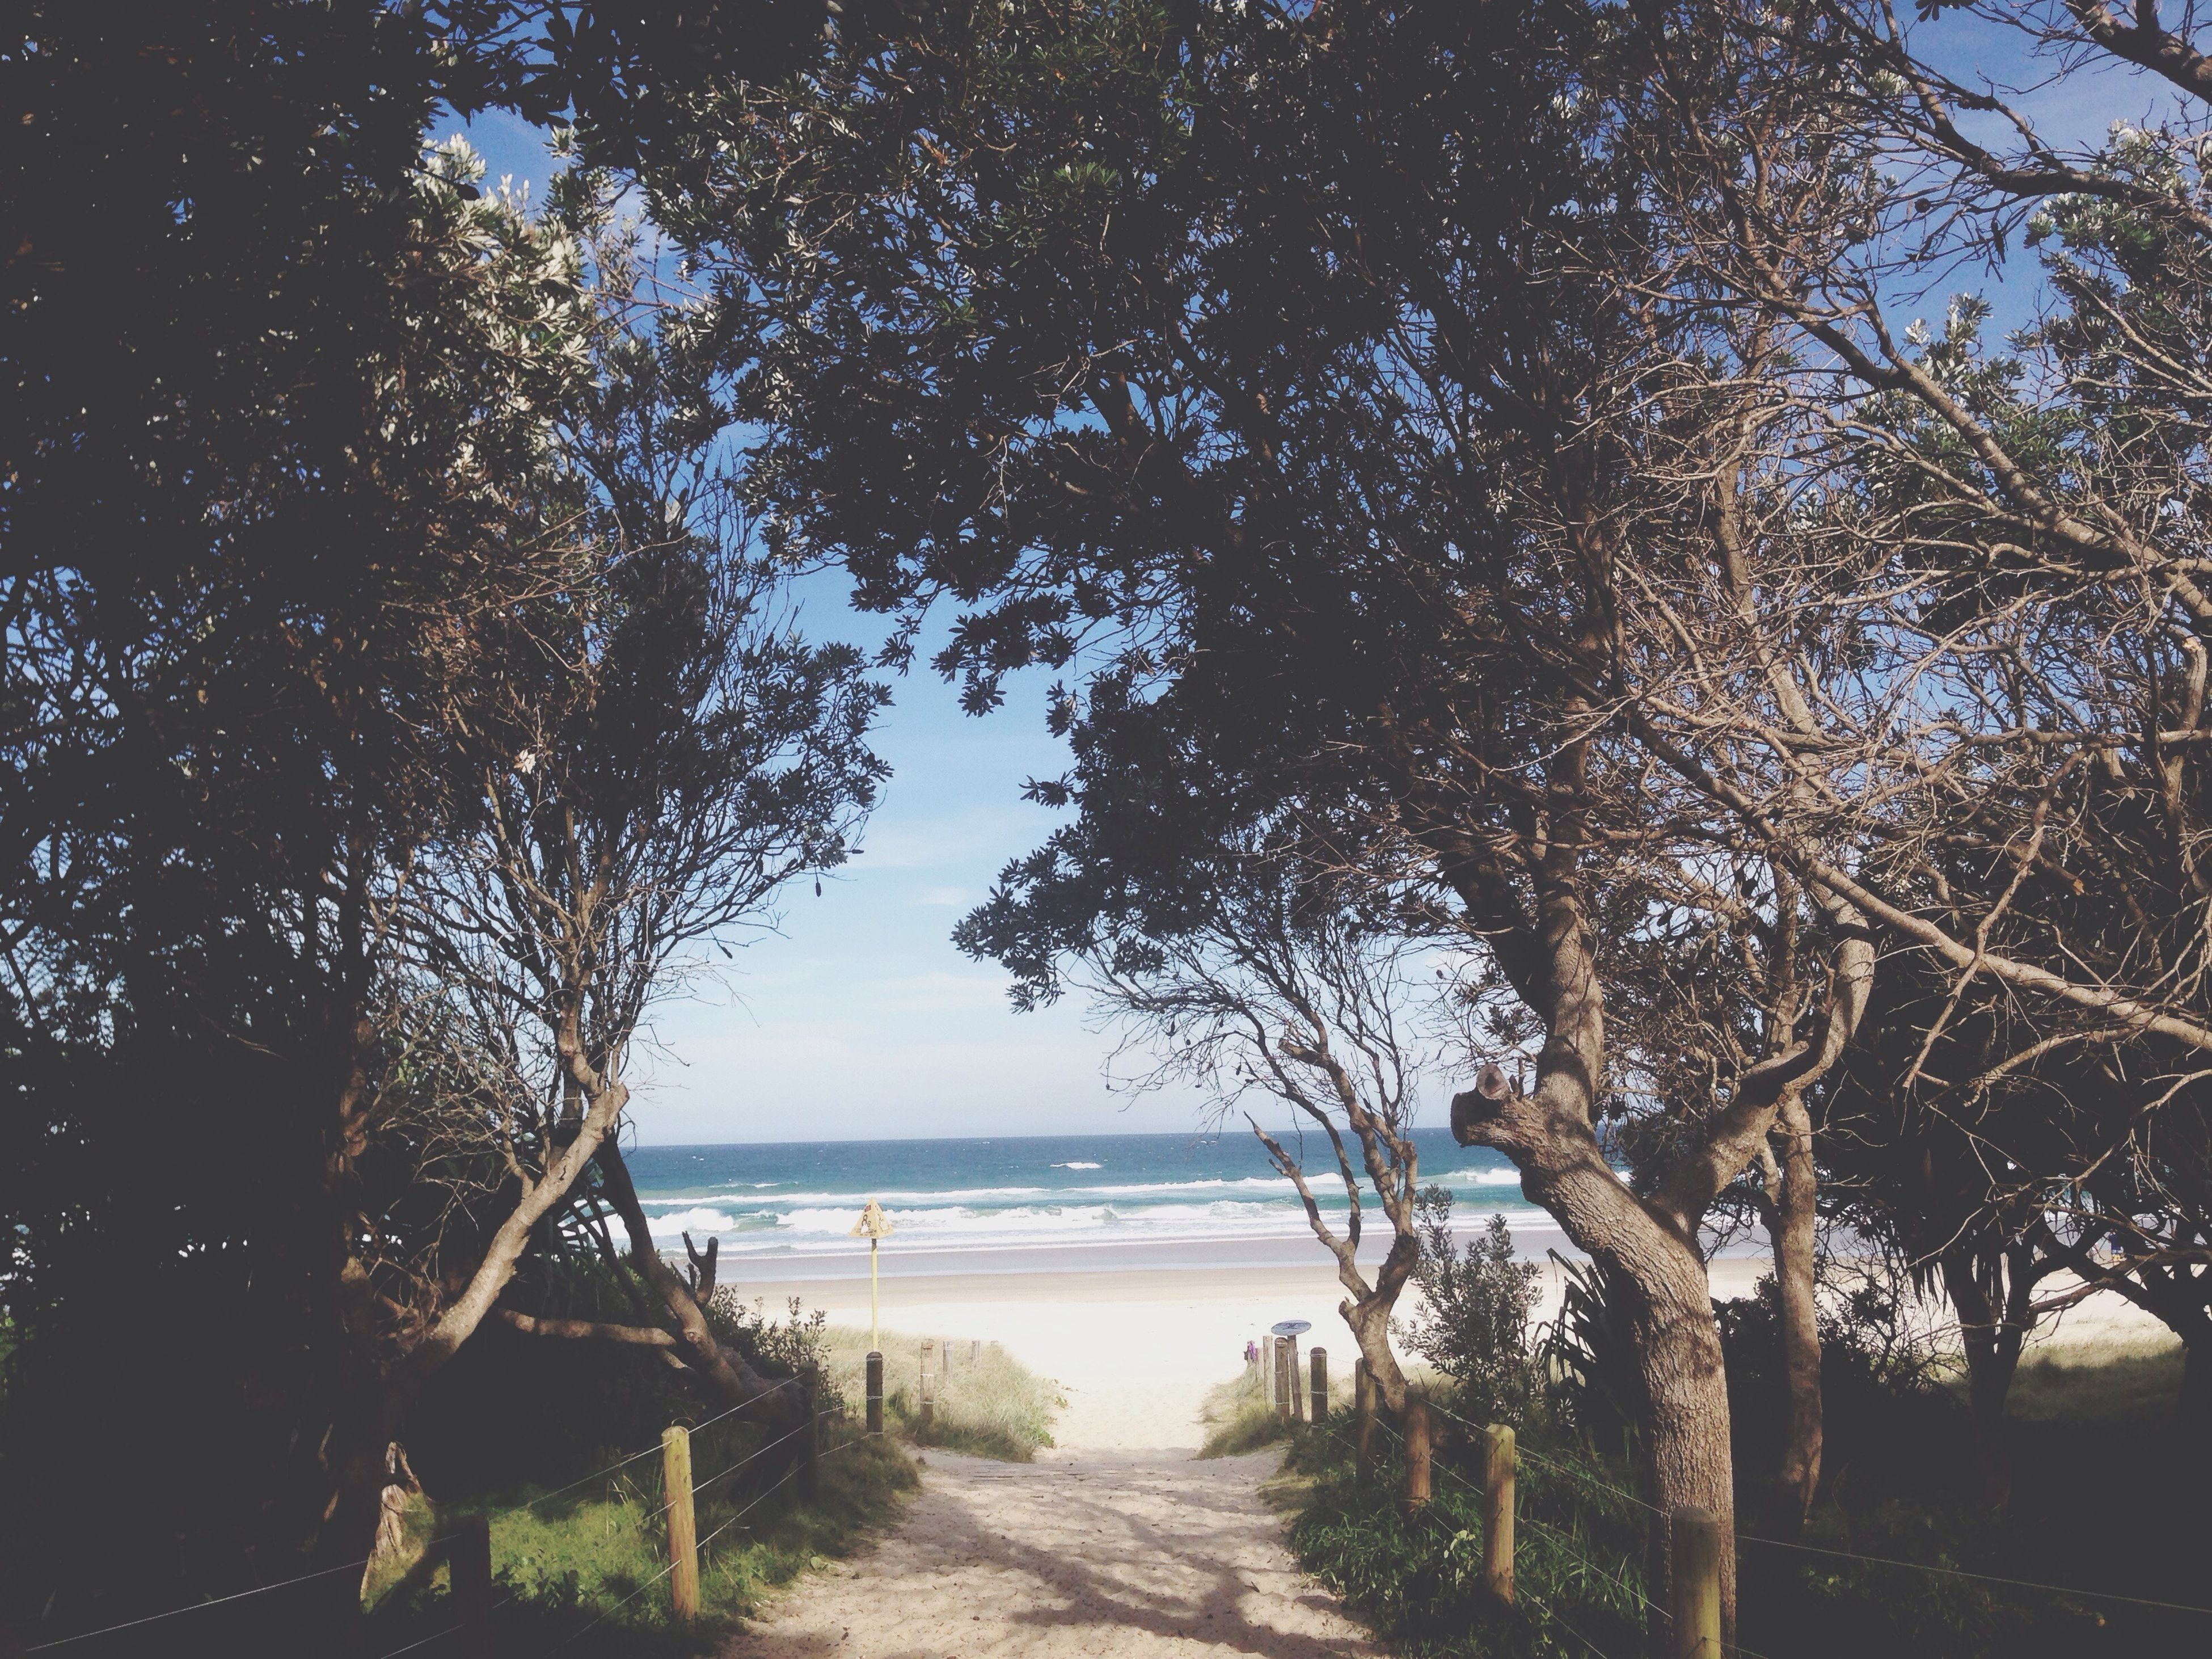 sea, water, tree, tranquility, horizon over water, tranquil scene, scenics, beach, beauty in nature, nature, sky, shore, the way forward, idyllic, branch, sand, growth, outdoors, day, sunlight